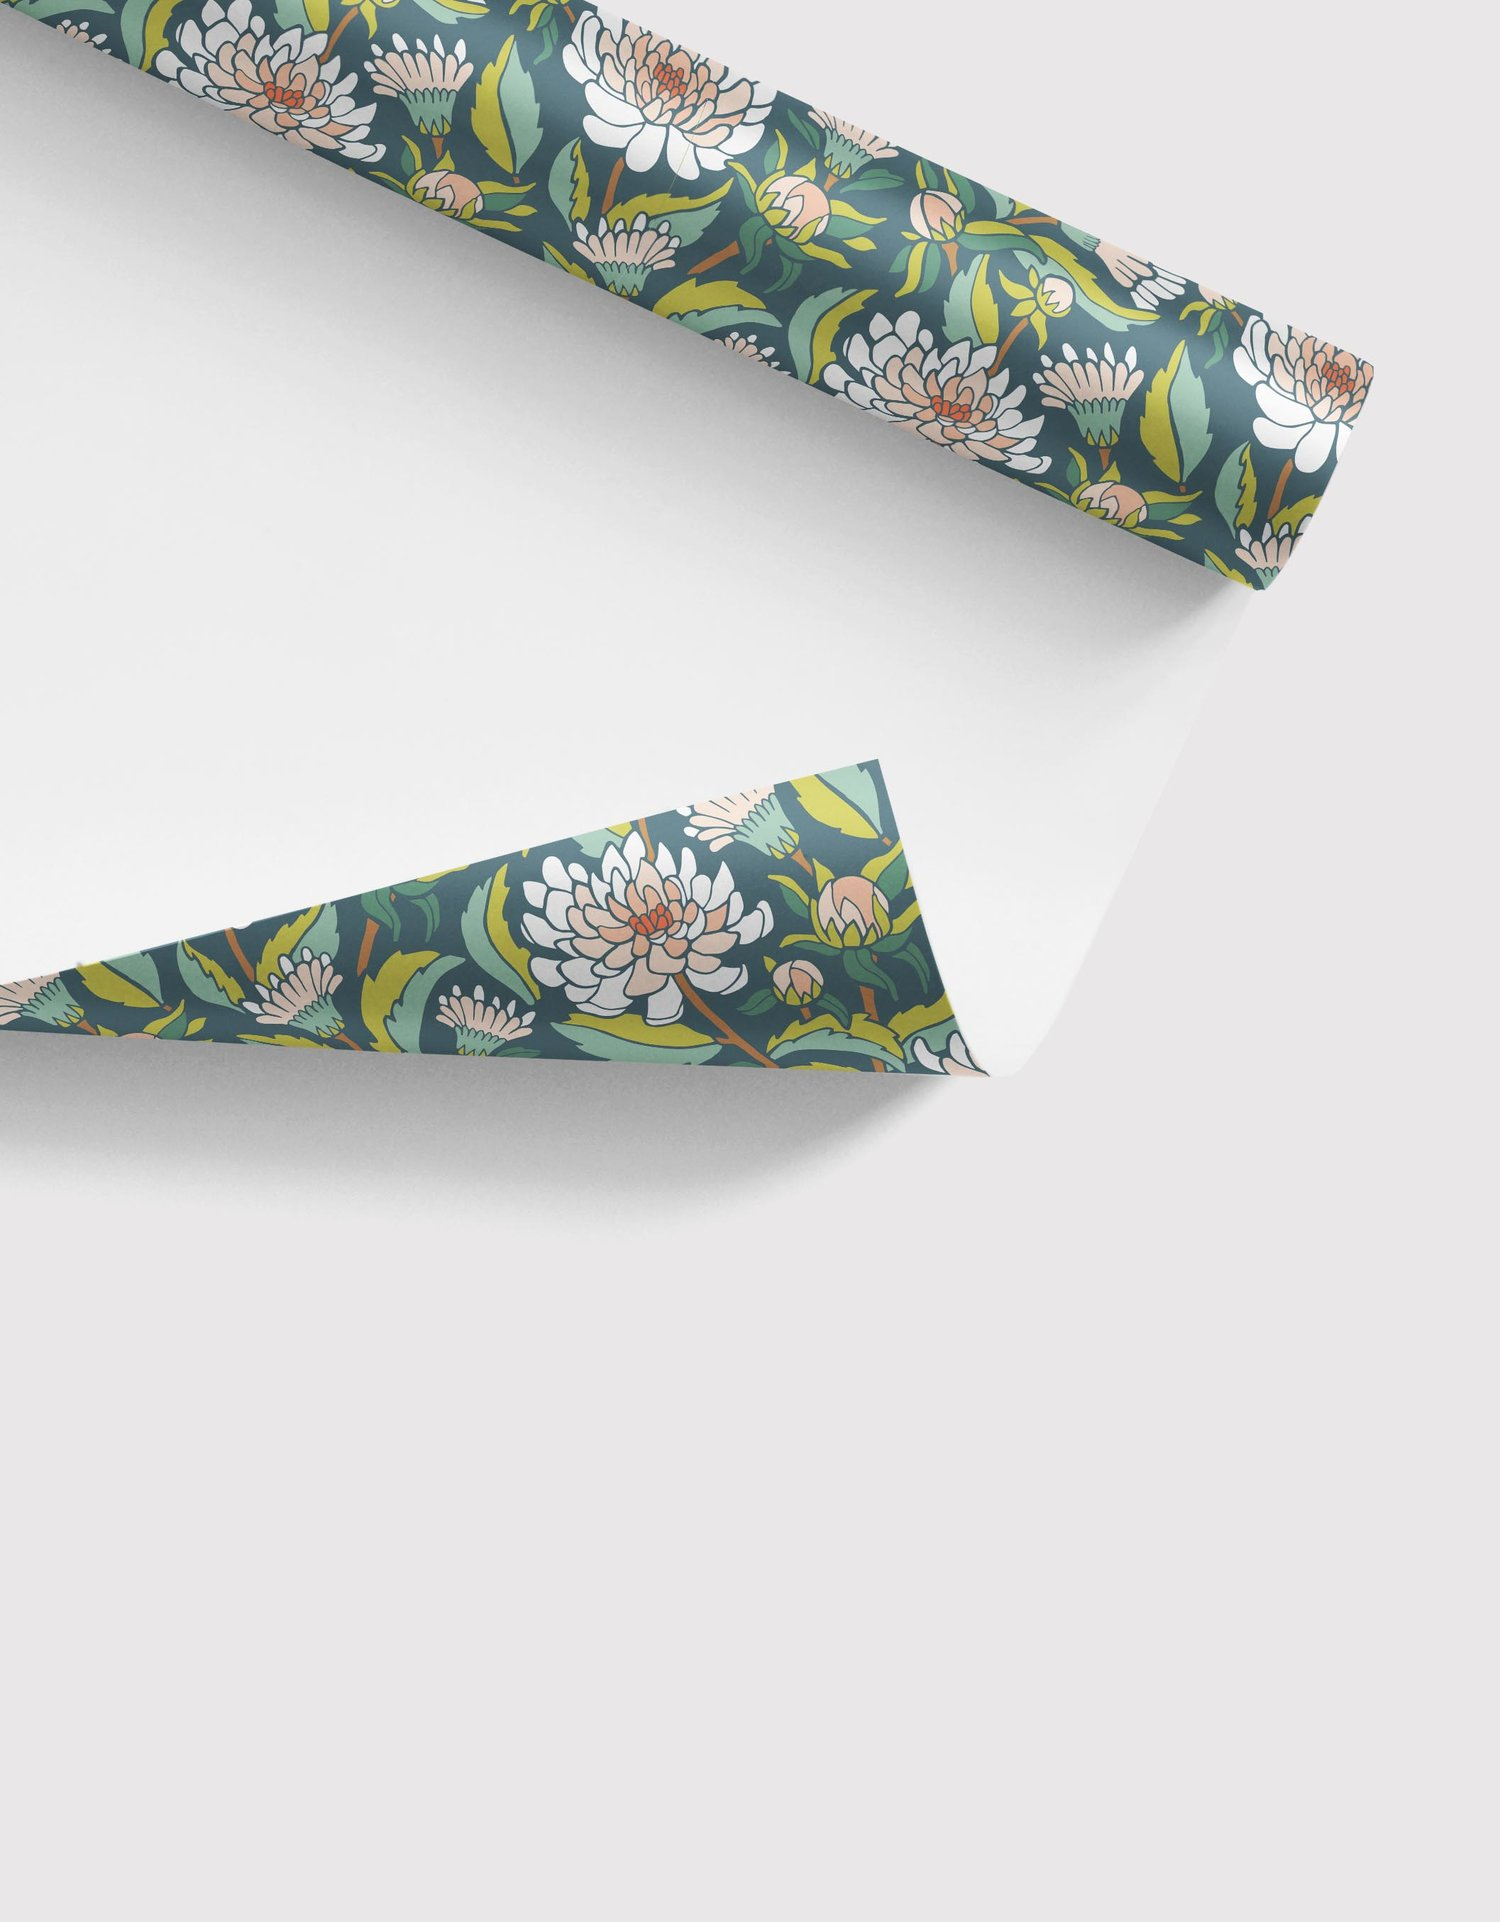 Dahlia Garden Gift Wrap Sheets by Jessie Tyree Jenness for Root & Branch Paper Co.